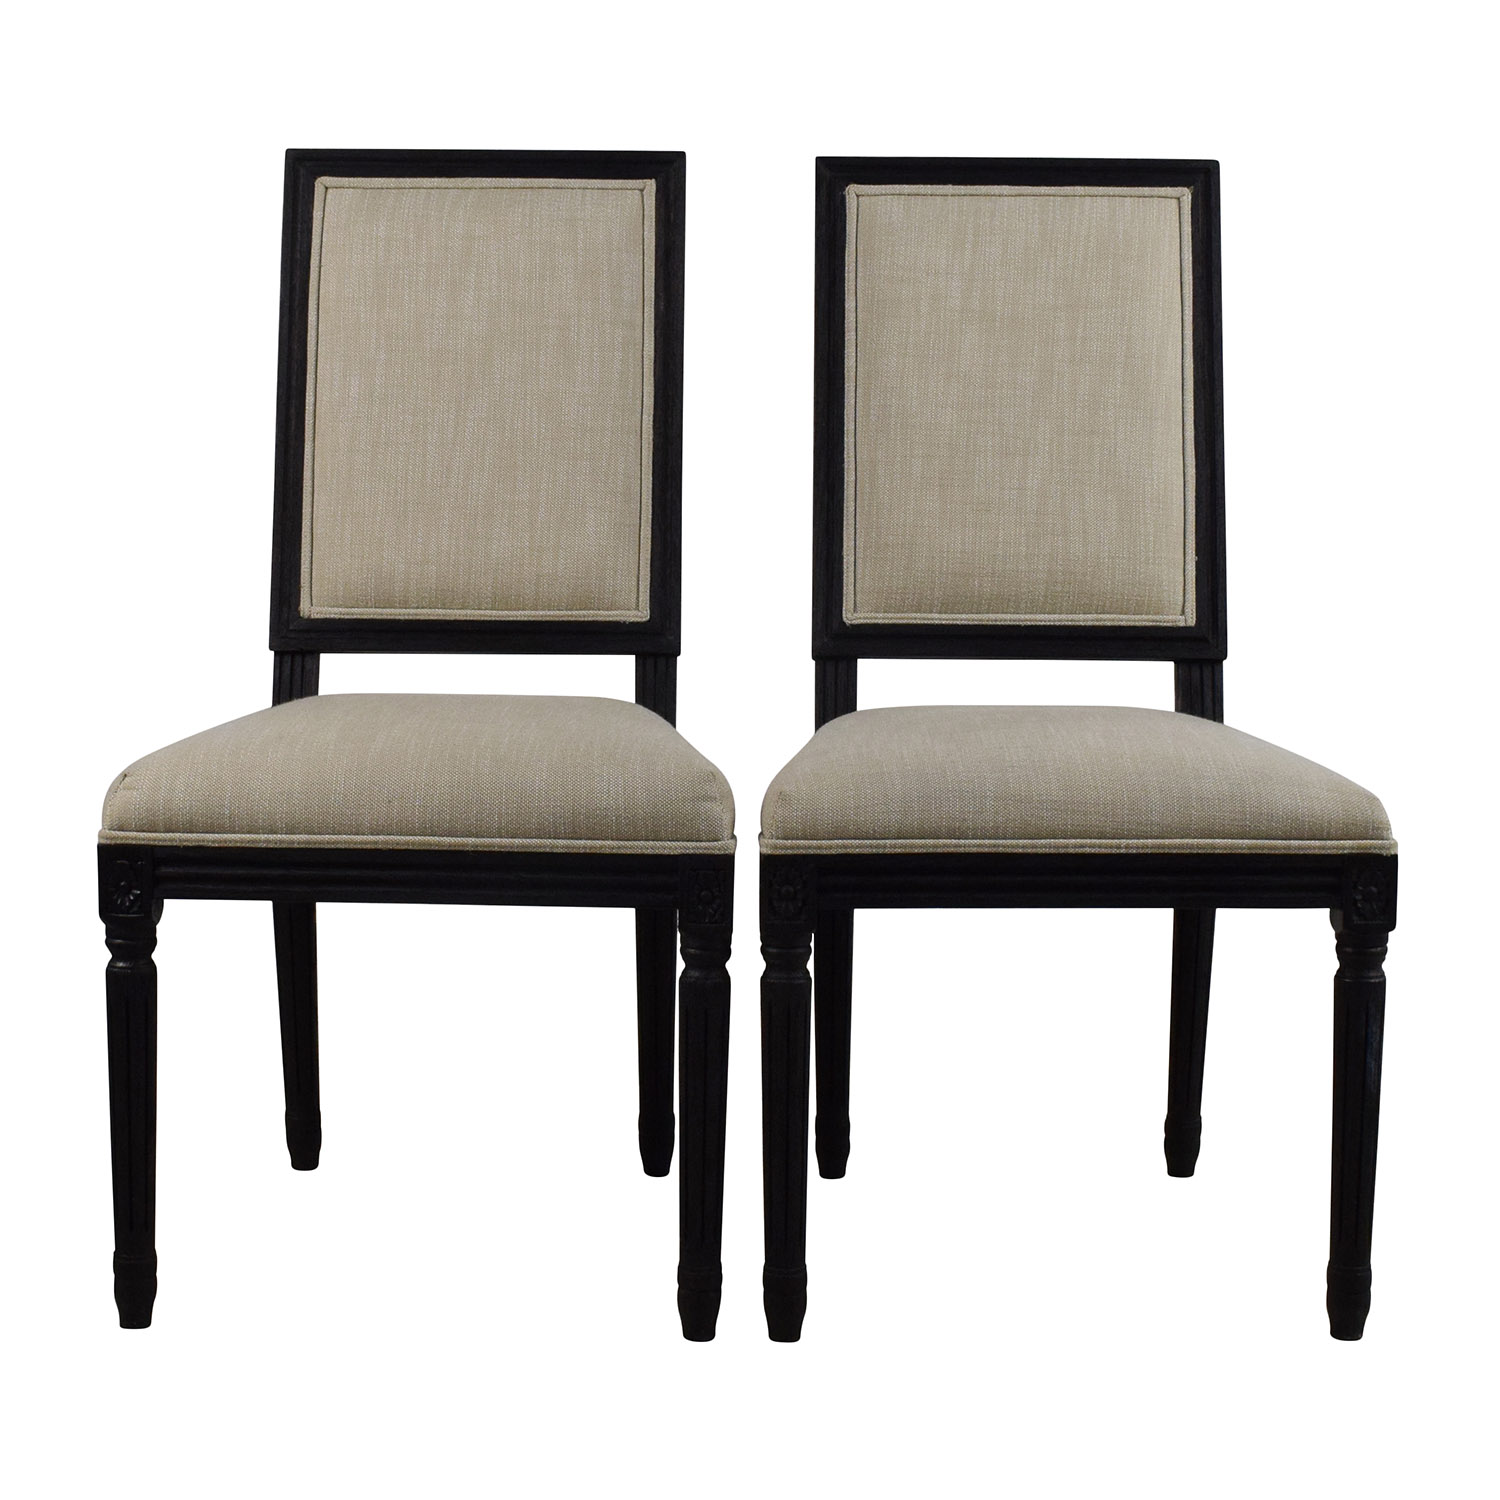 10% OFF - Restoration Hardware Restoration Hardware Pair of Vintage French  Square Fabric Chairs / Chairs